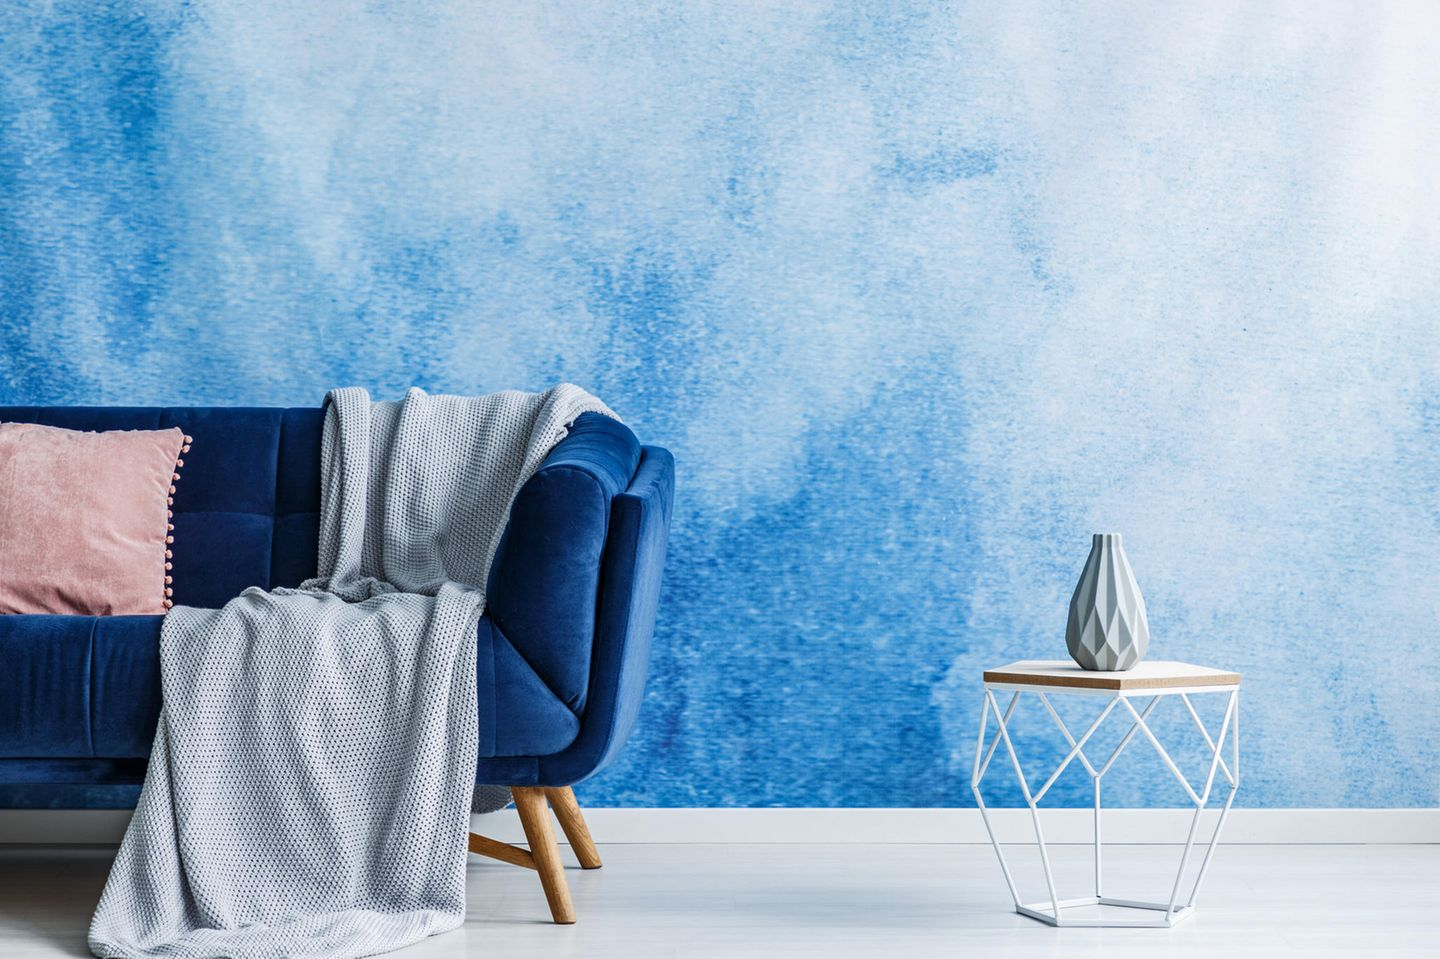 Wandgestaltung mit Farbe: Wand in Ombré-Look